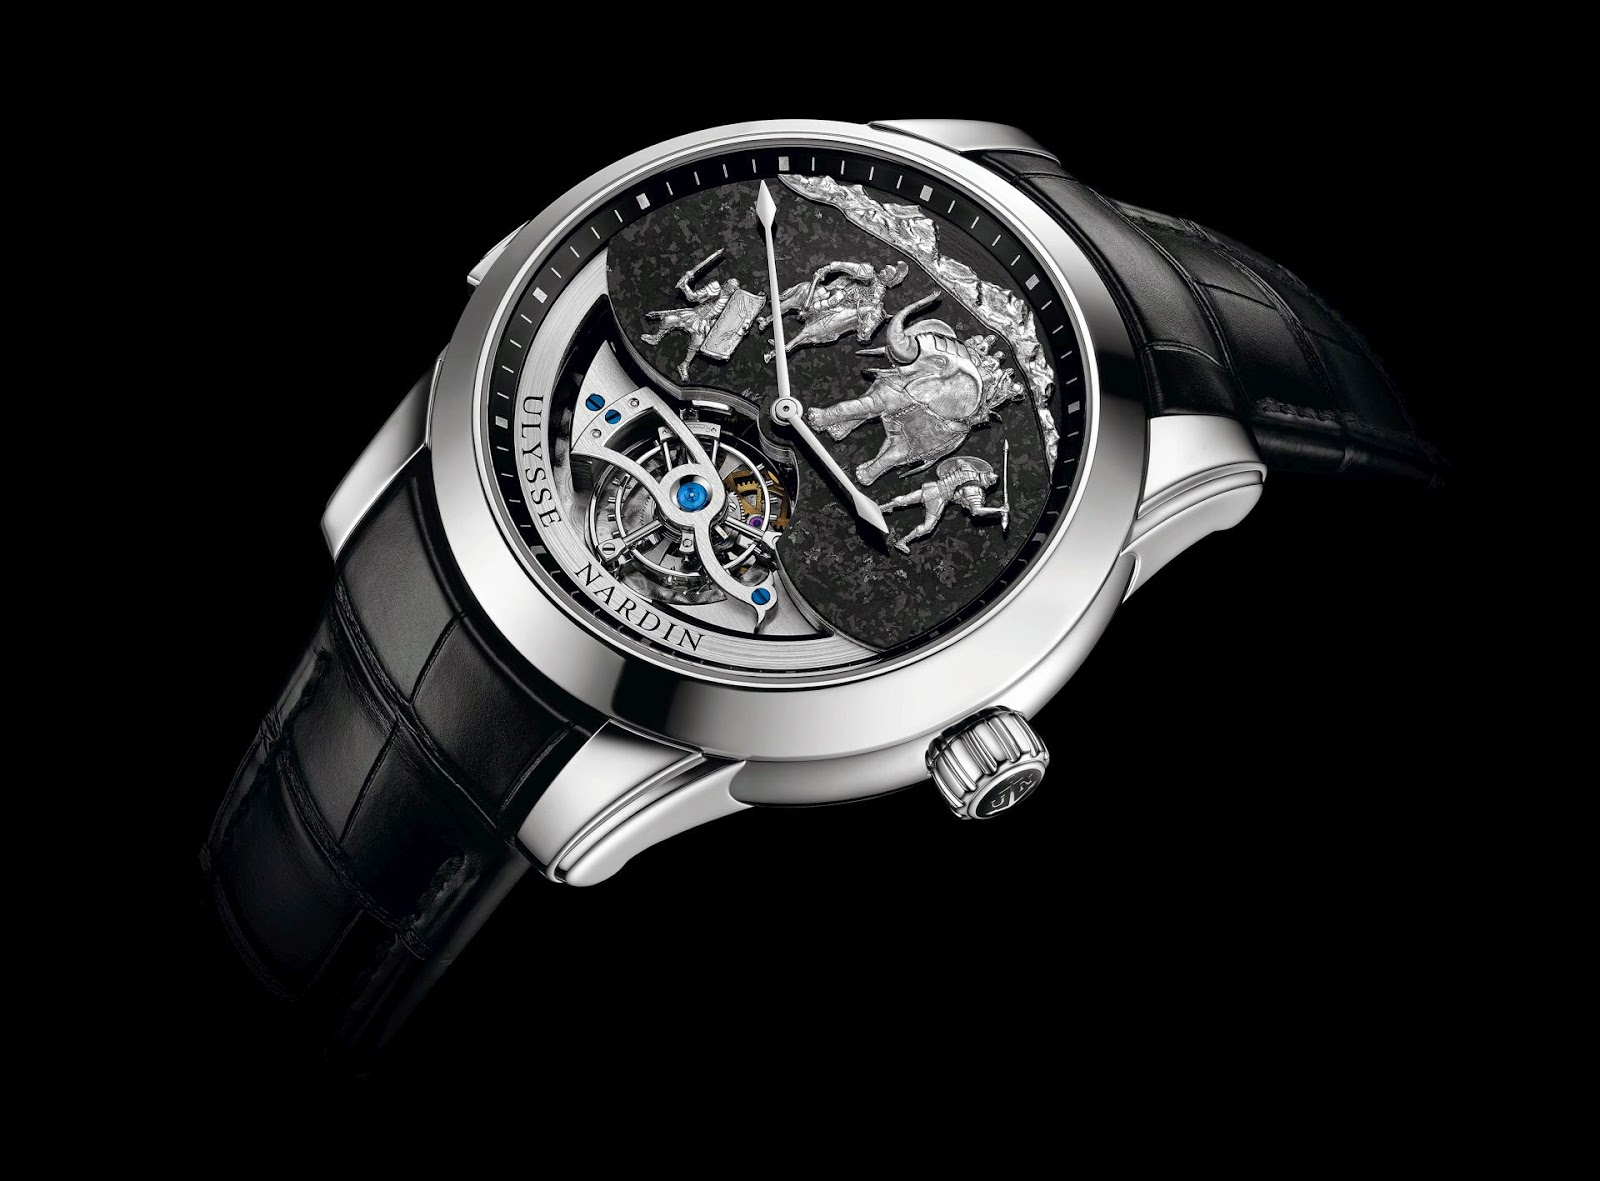 2016 Ulysse Nardin Watches